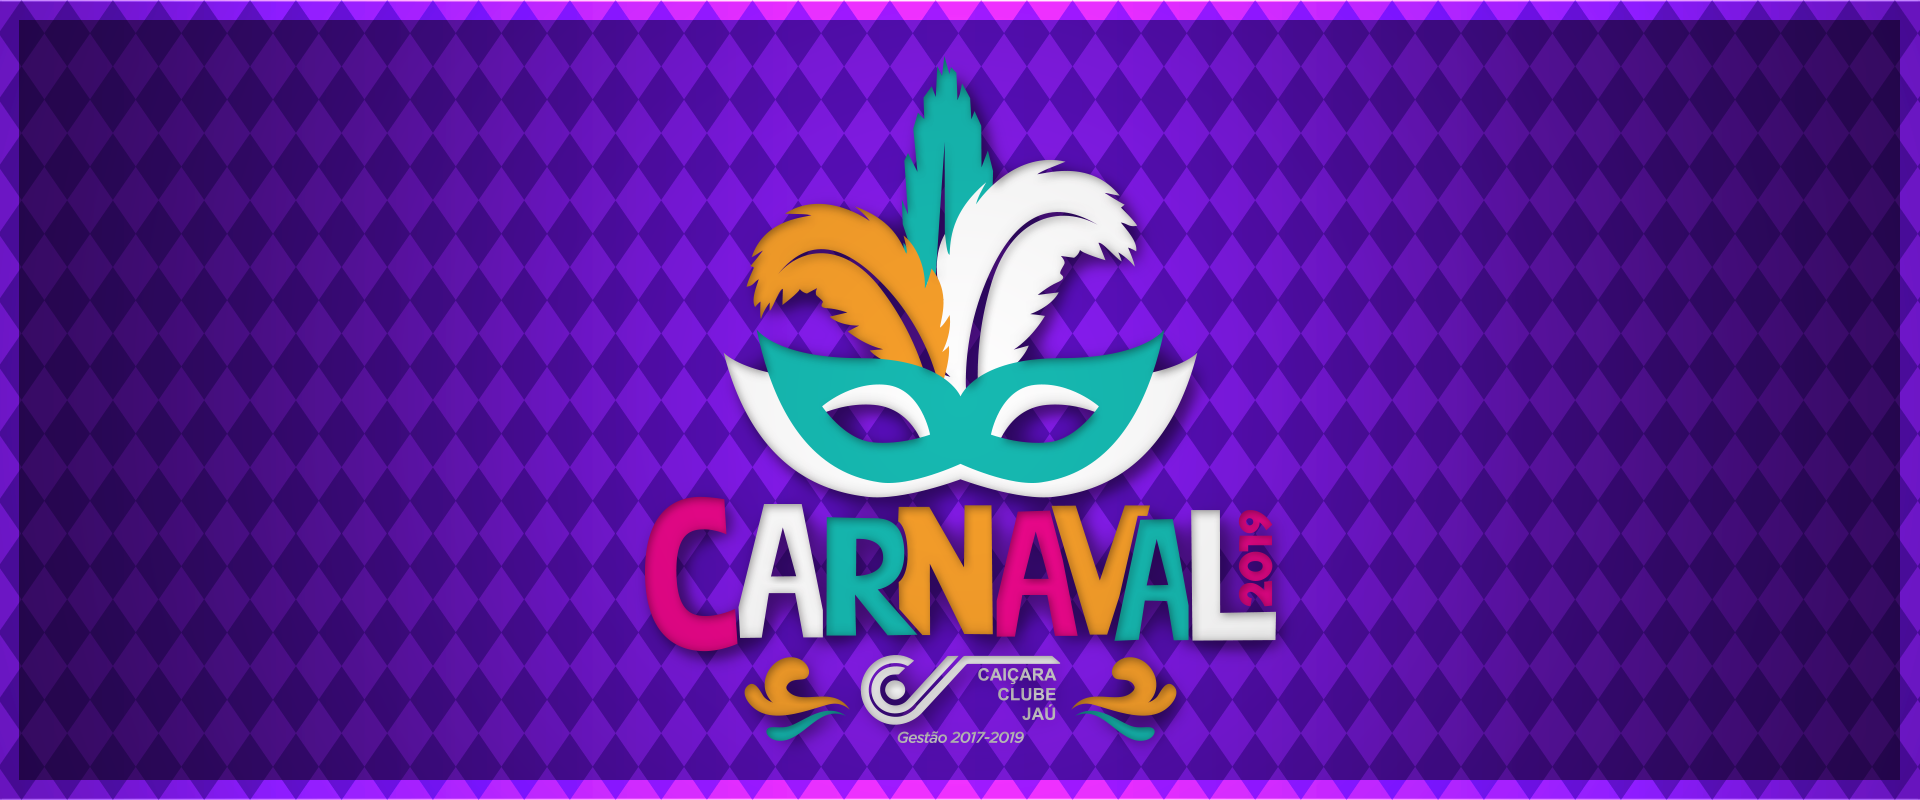 site_banner_carnaval19